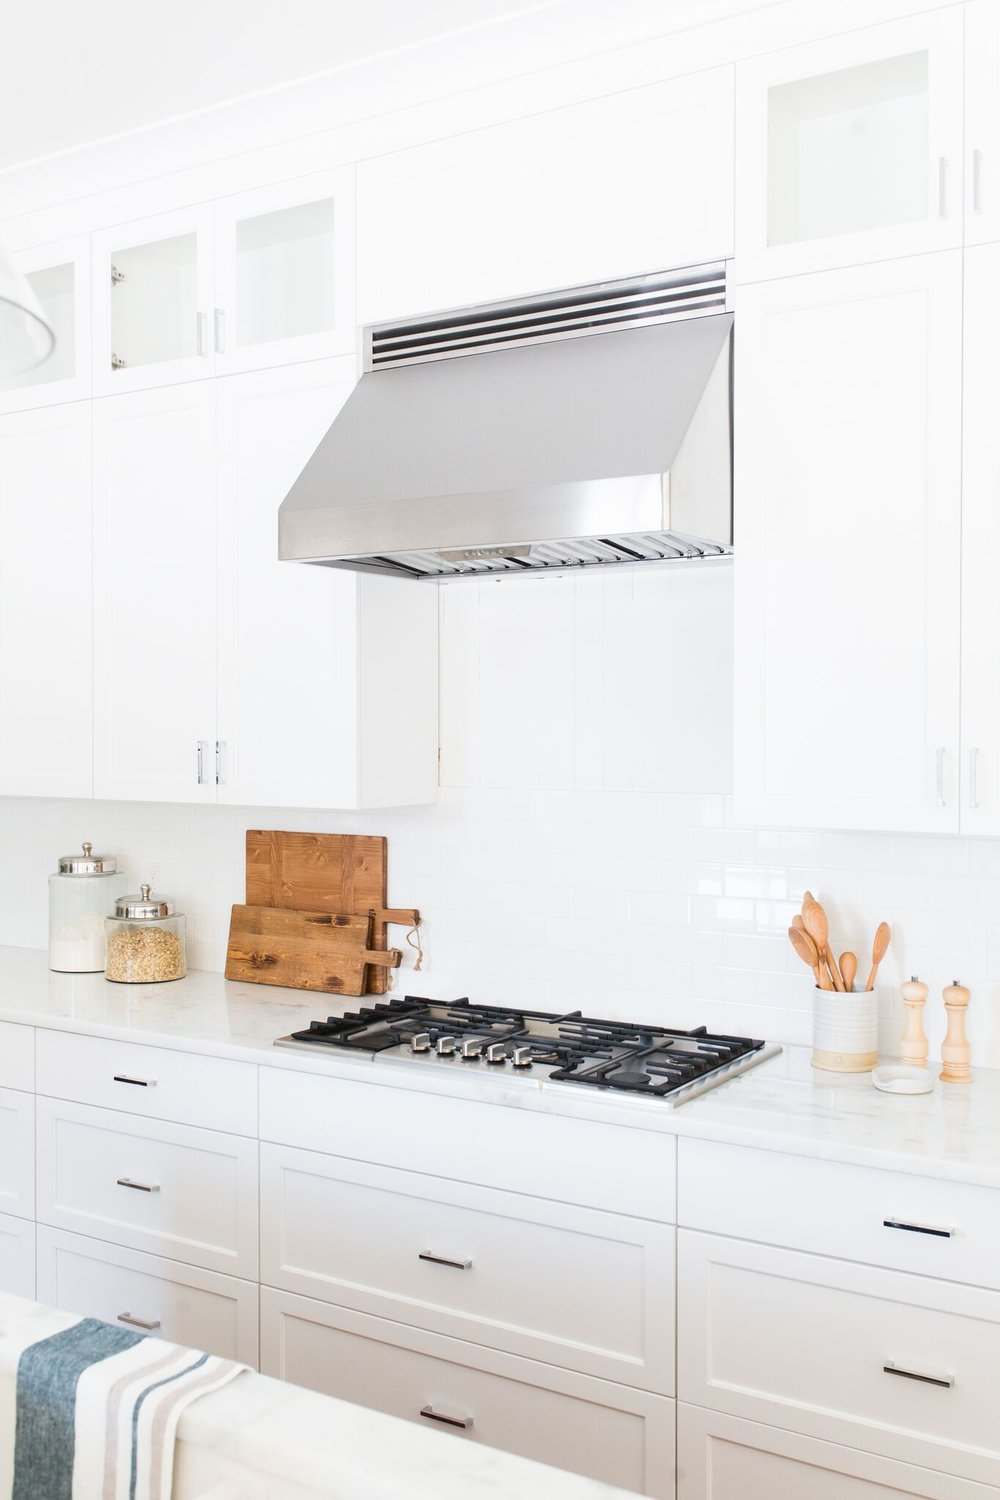 White cabinets with open range stove